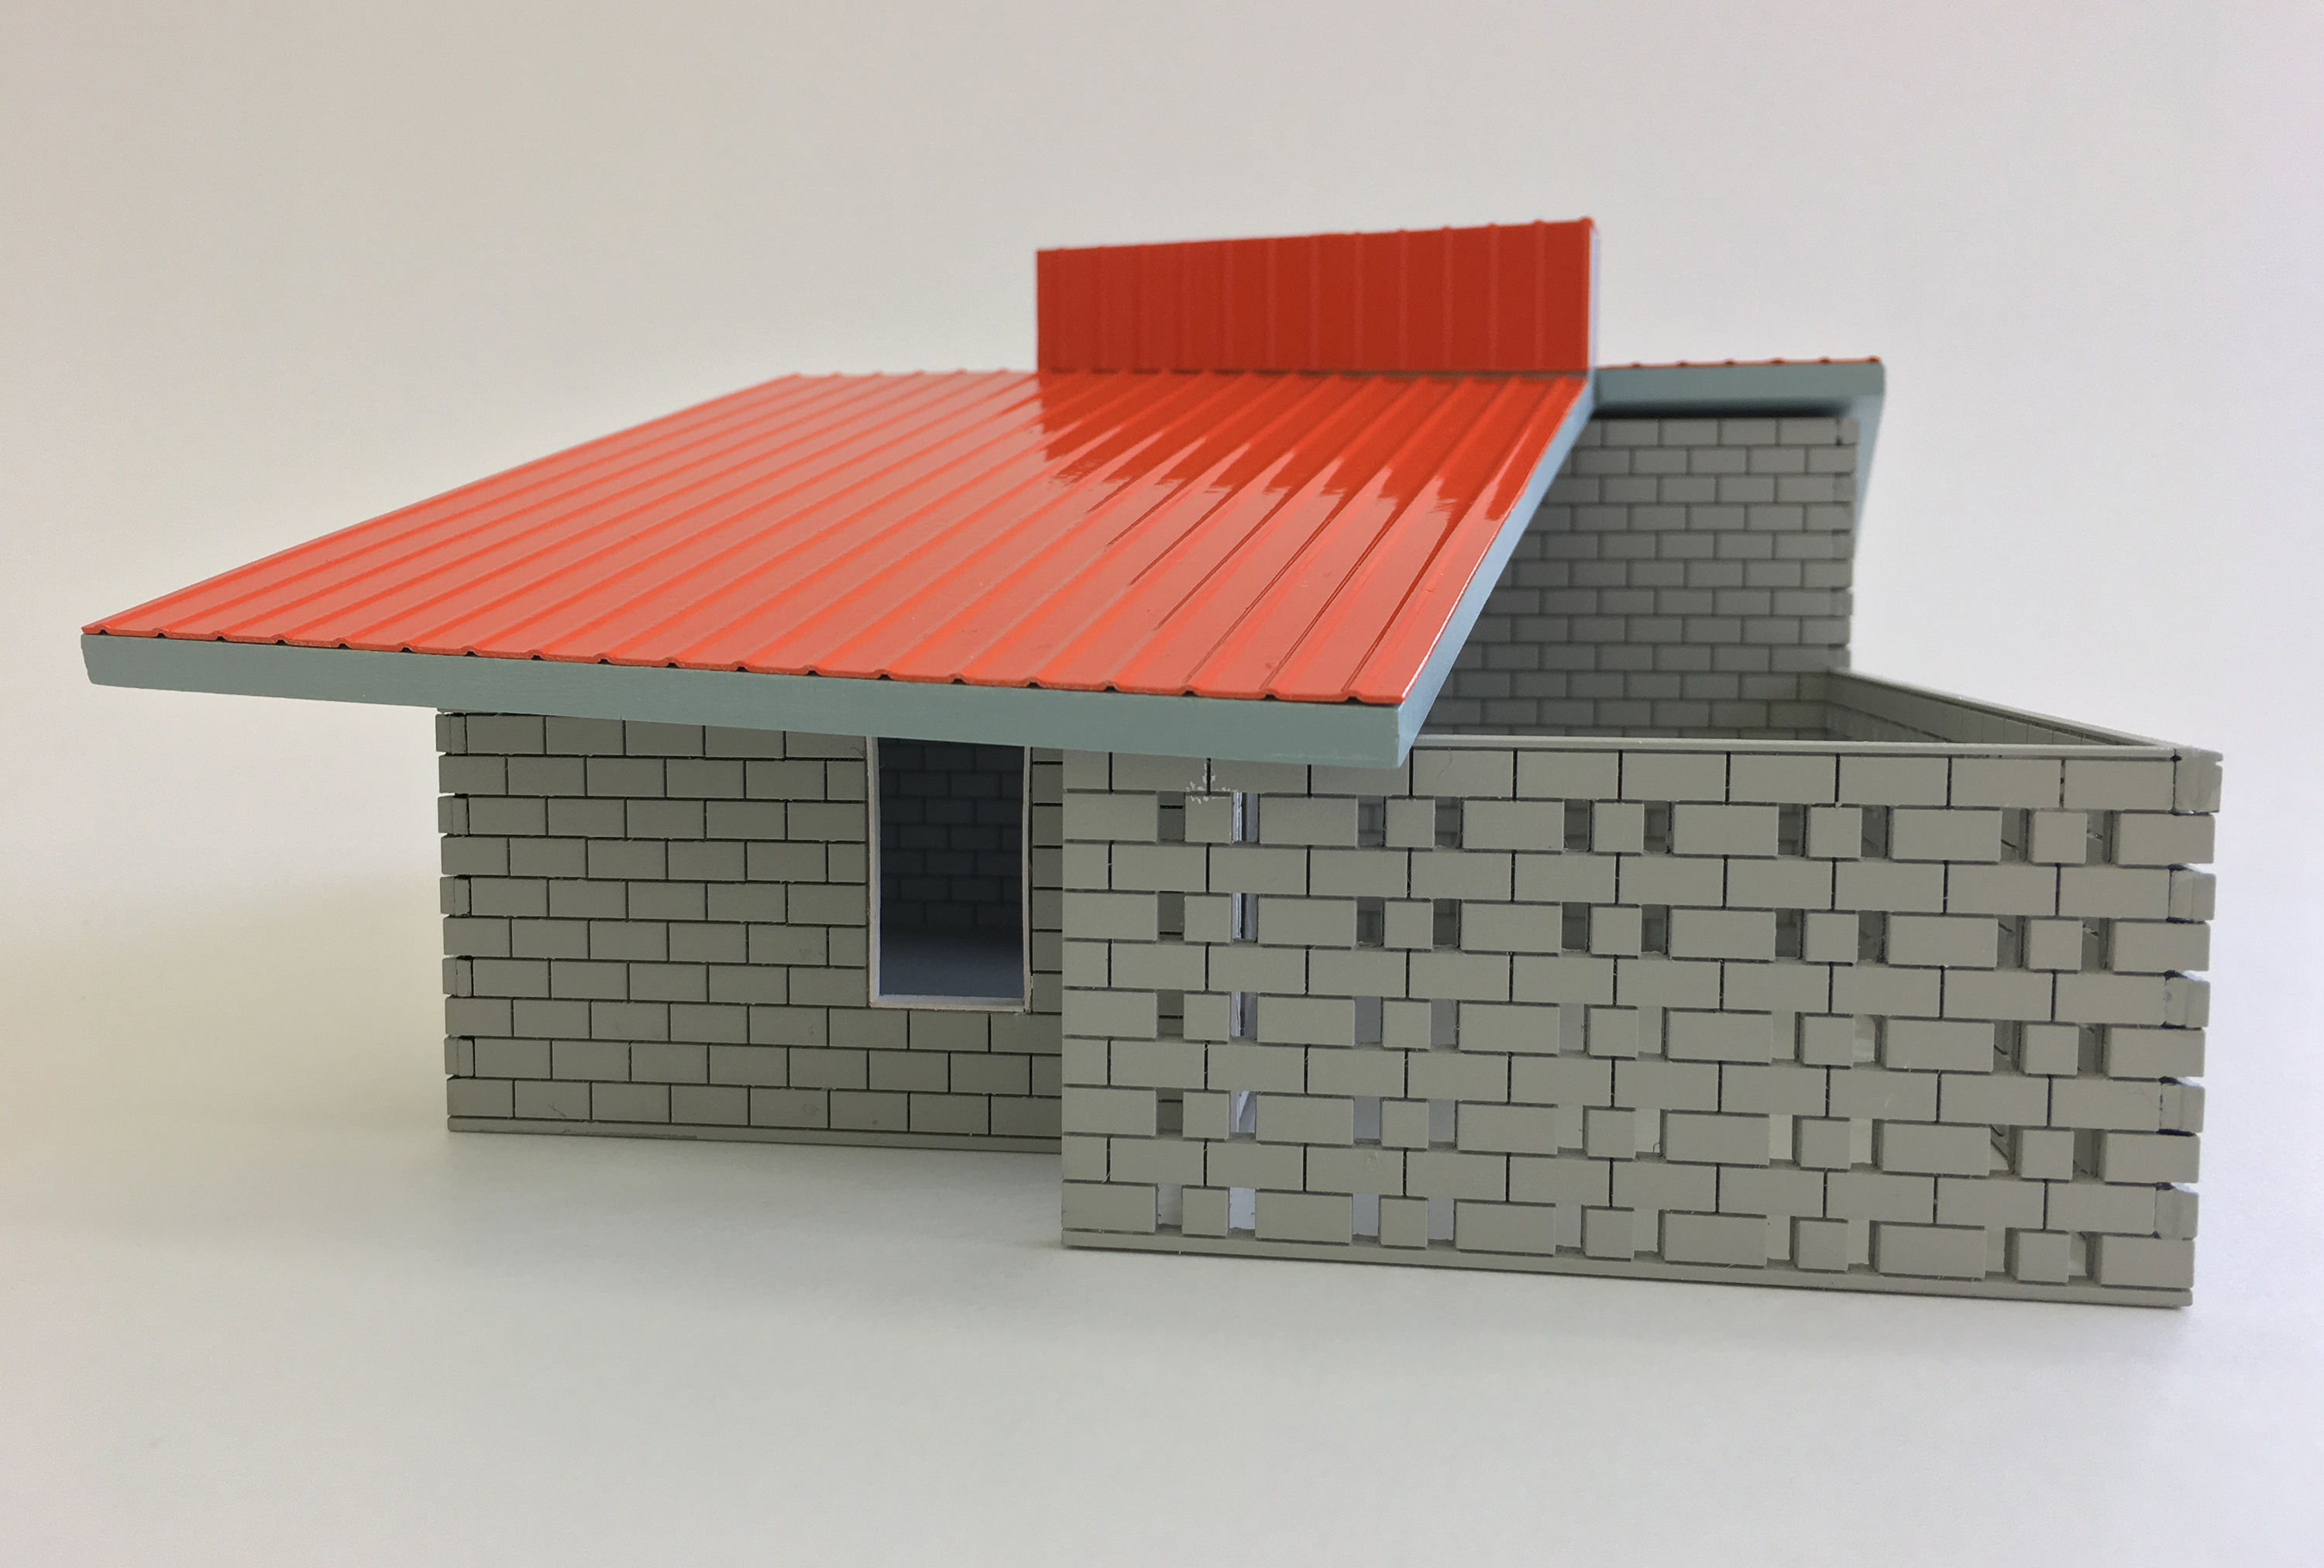 Architectural model of house with grey bricks and orange roof